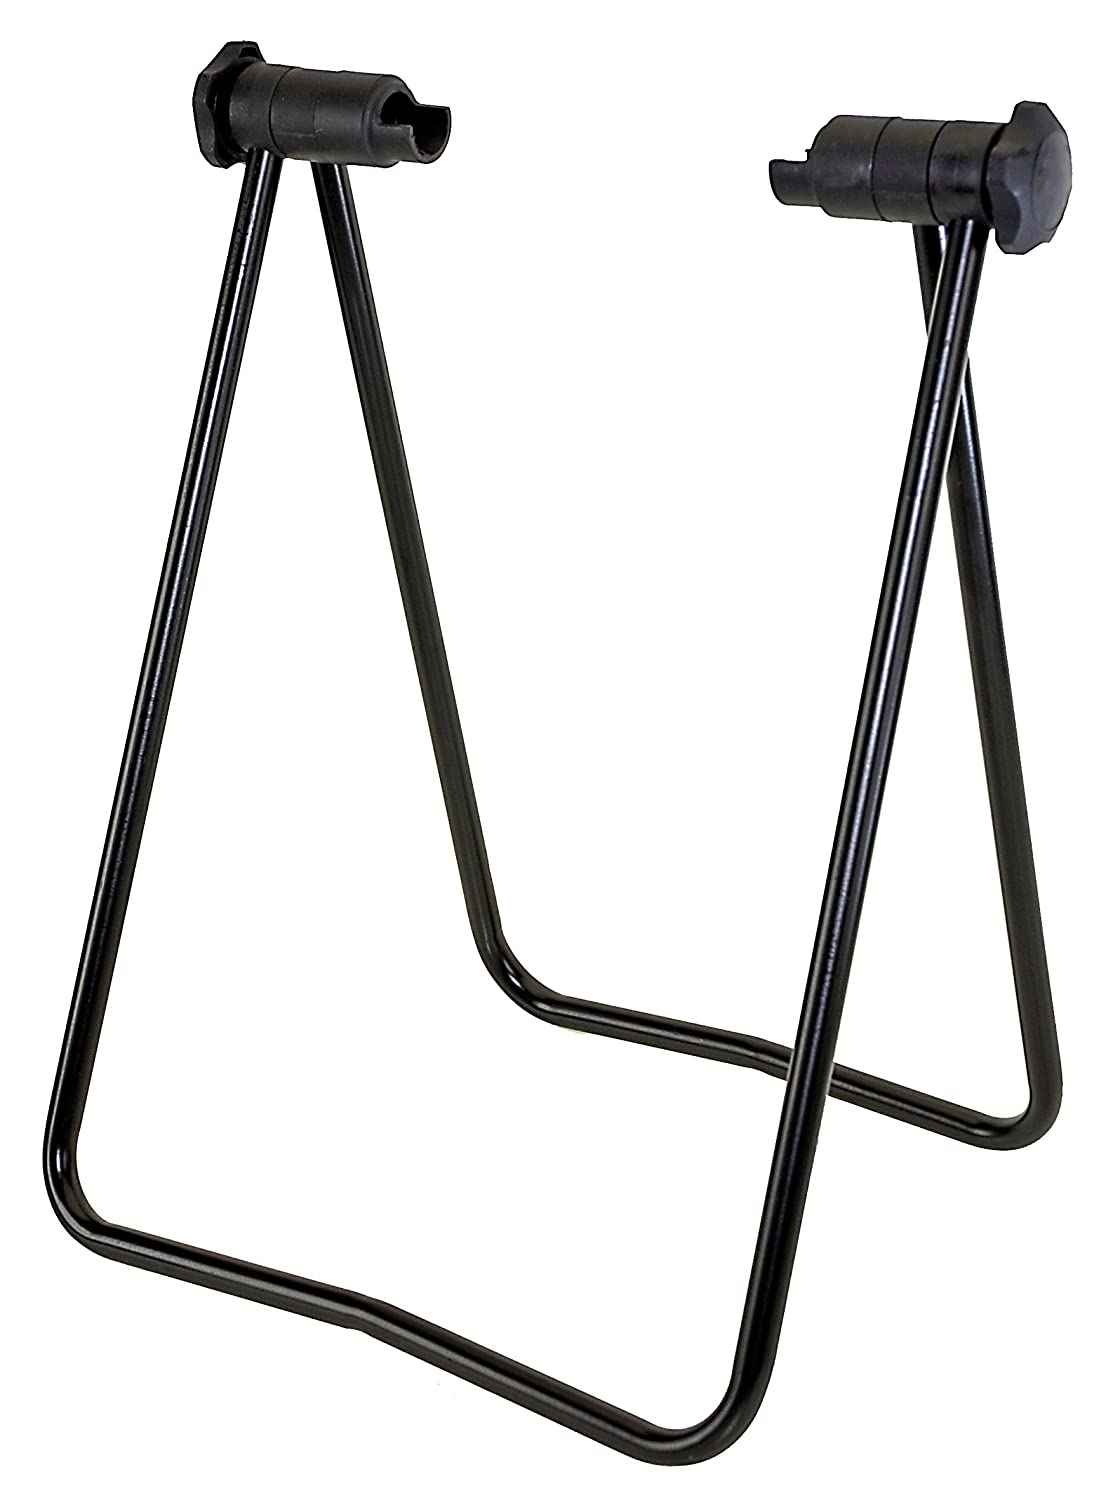 M-Wave Foldable Bicycle Display Stand by M-Wave: Amazon.es: Deportes y aire libre